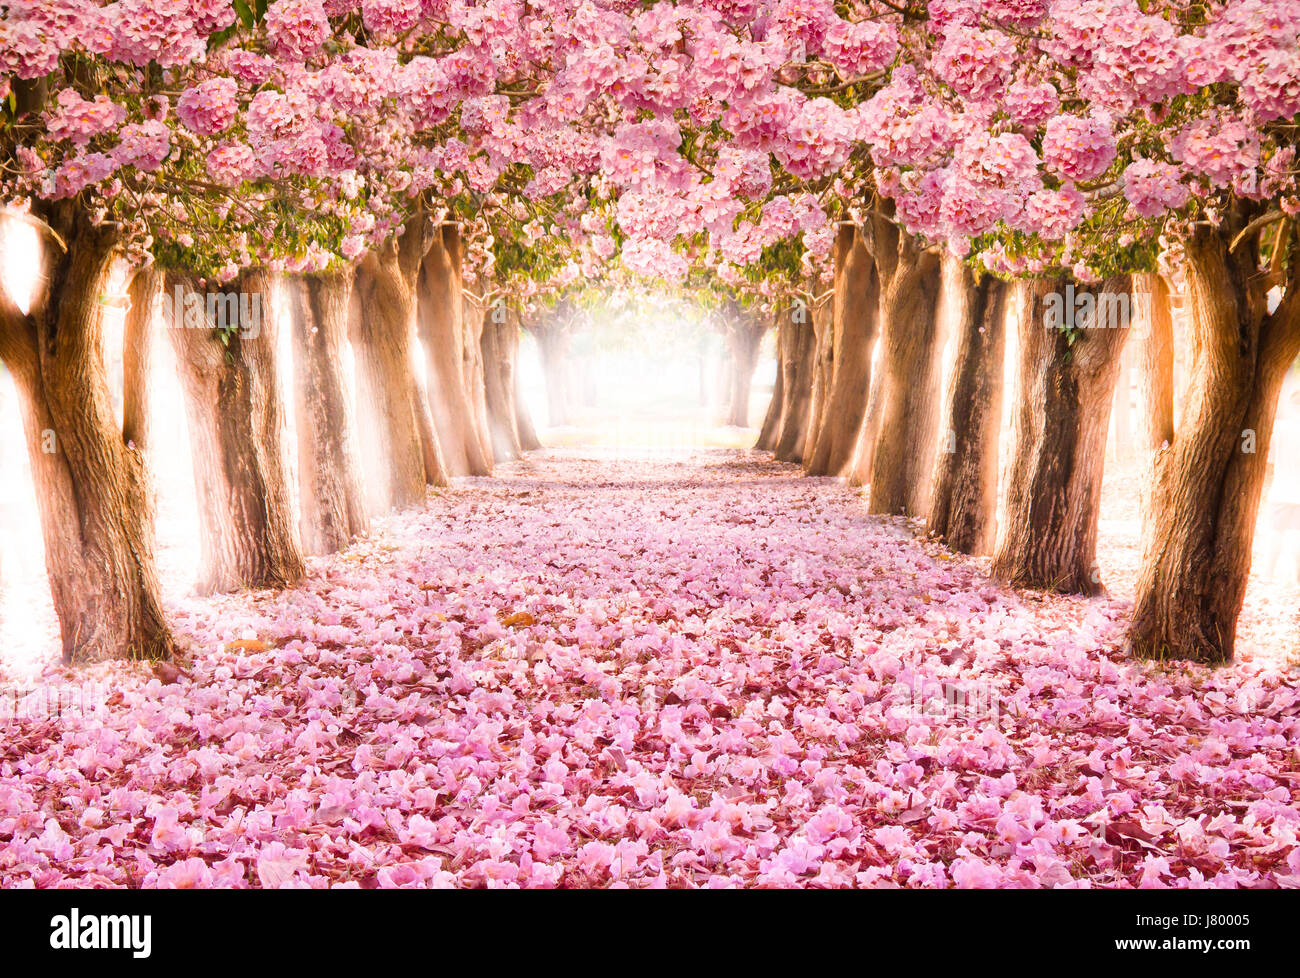 Falling Petal Over The Romantic Tunnel Of Pink Flower Trees Stock